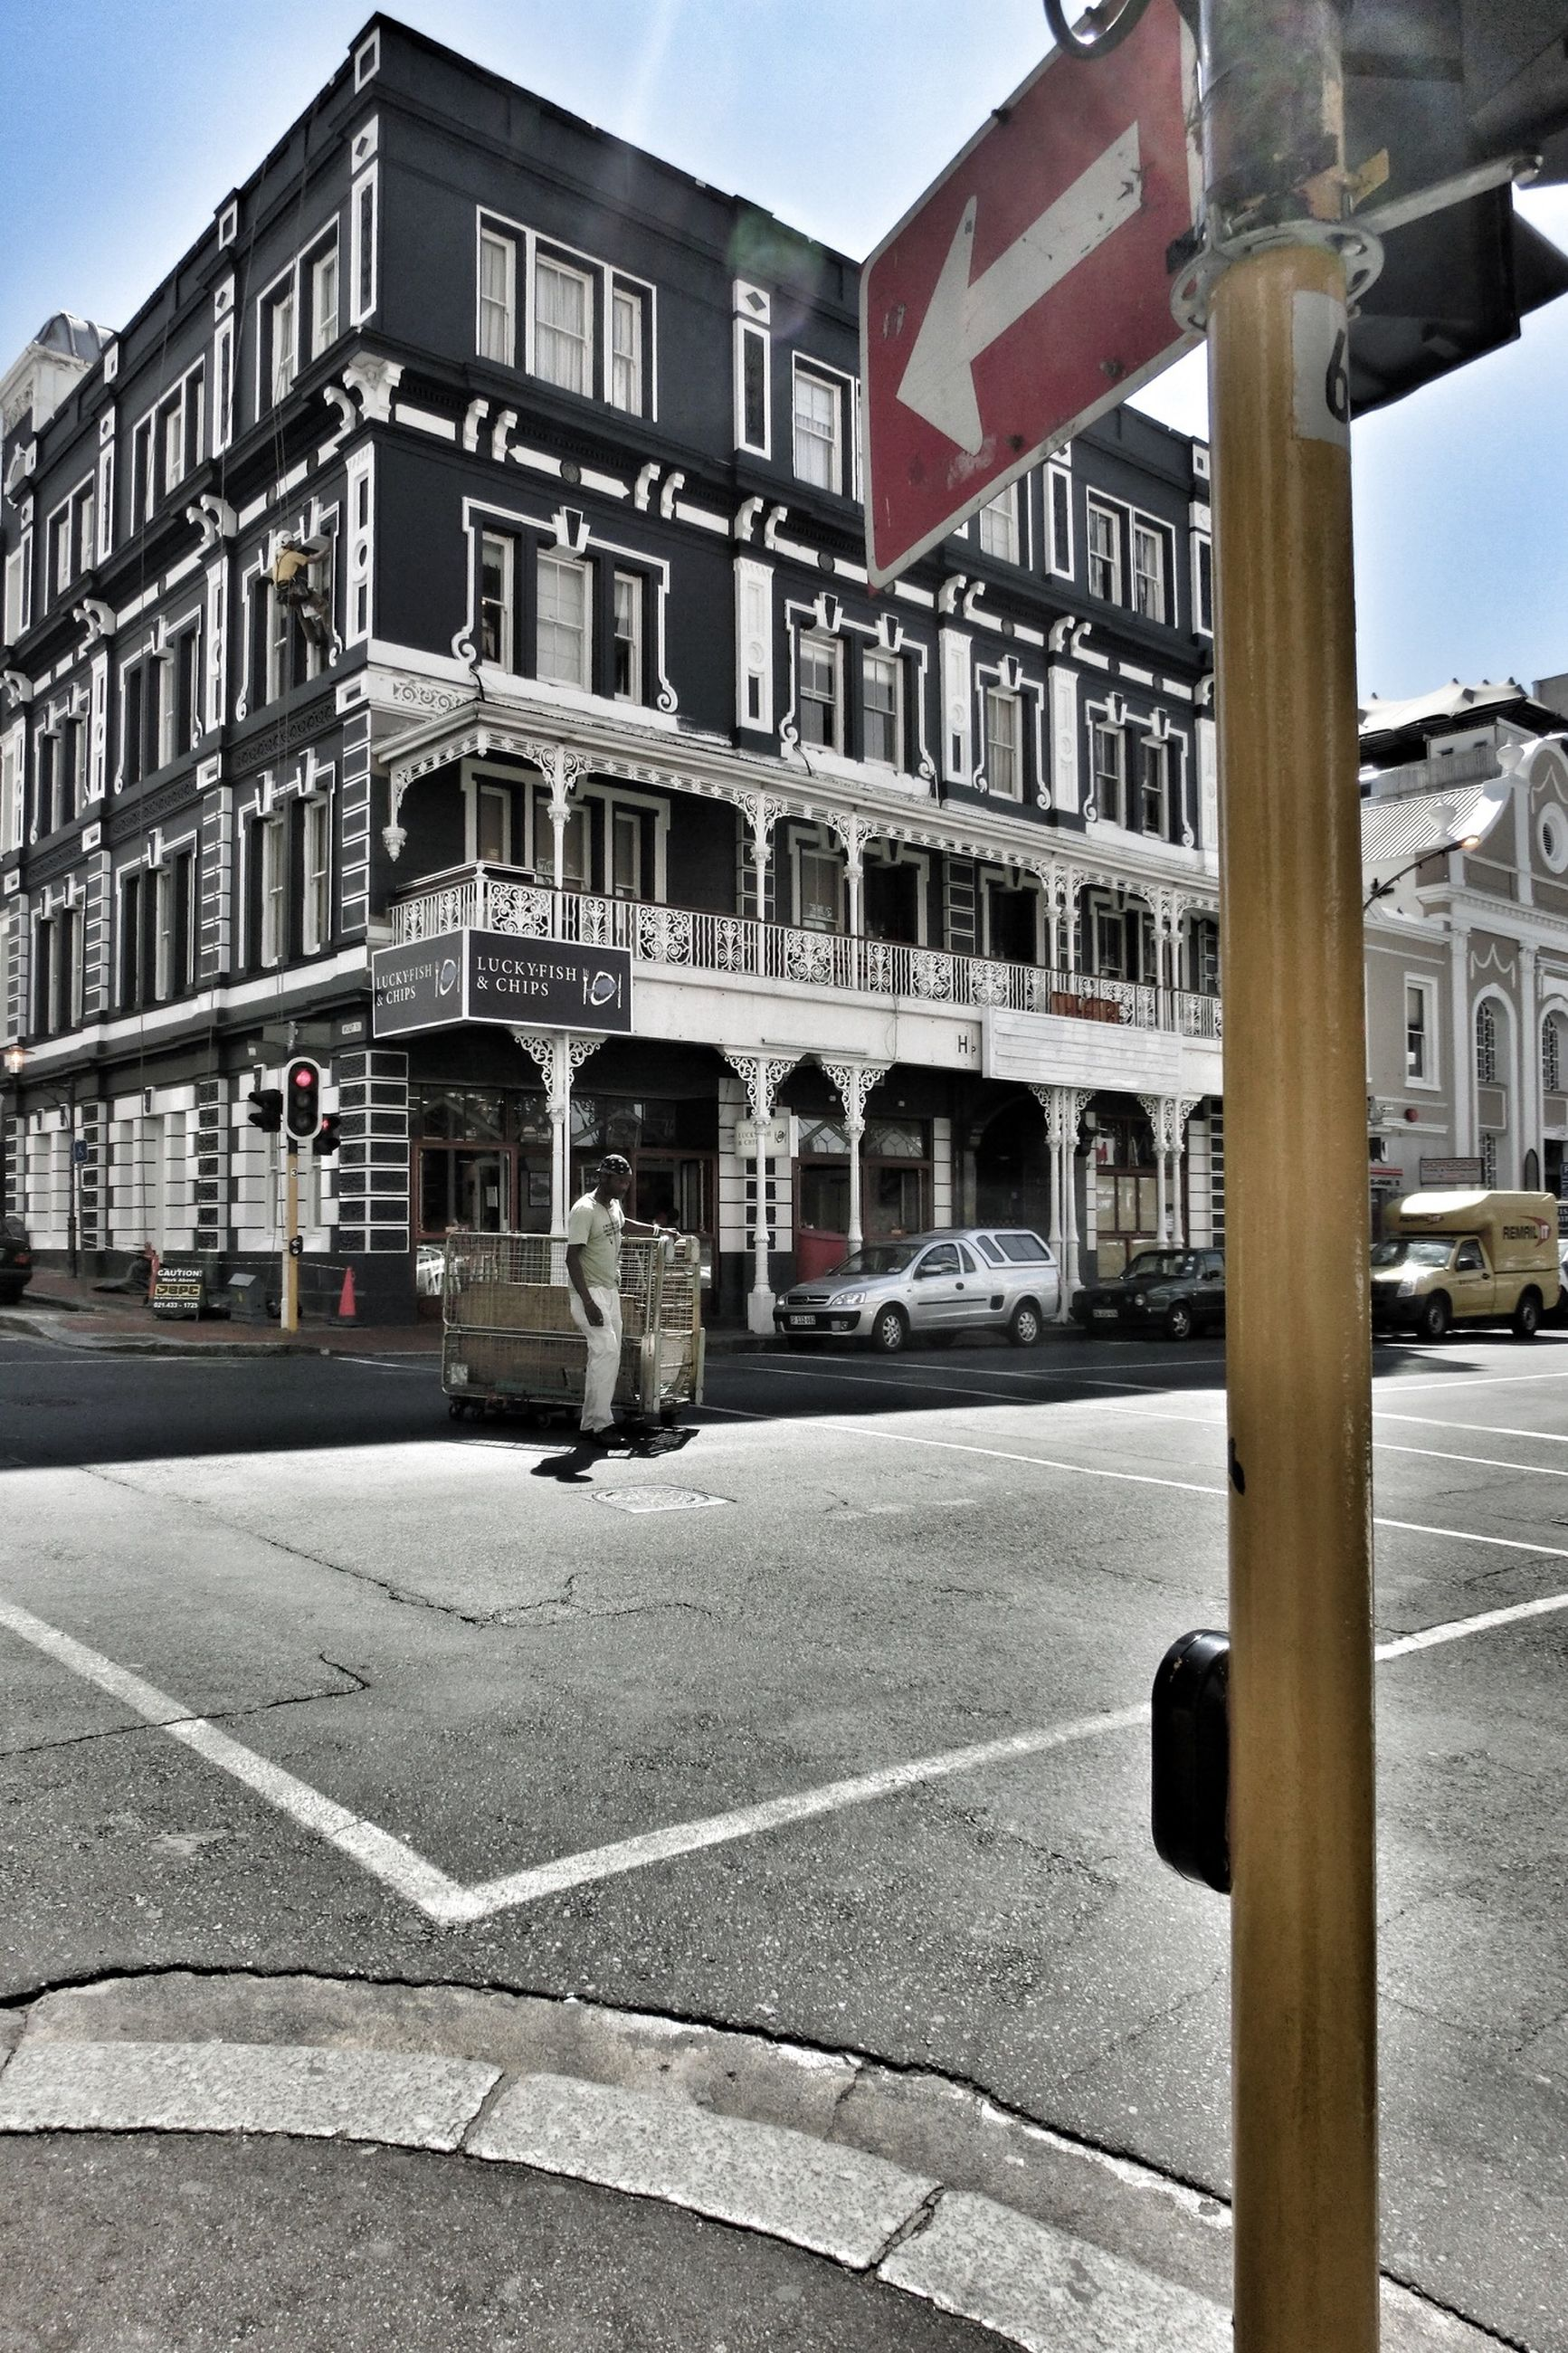 architecture, building exterior, built structure, city, street, transportation, road, car, sky, building, incidental people, arch, architectural column, city street, travel destinations, sunlight, clear sky, history, road marking, day